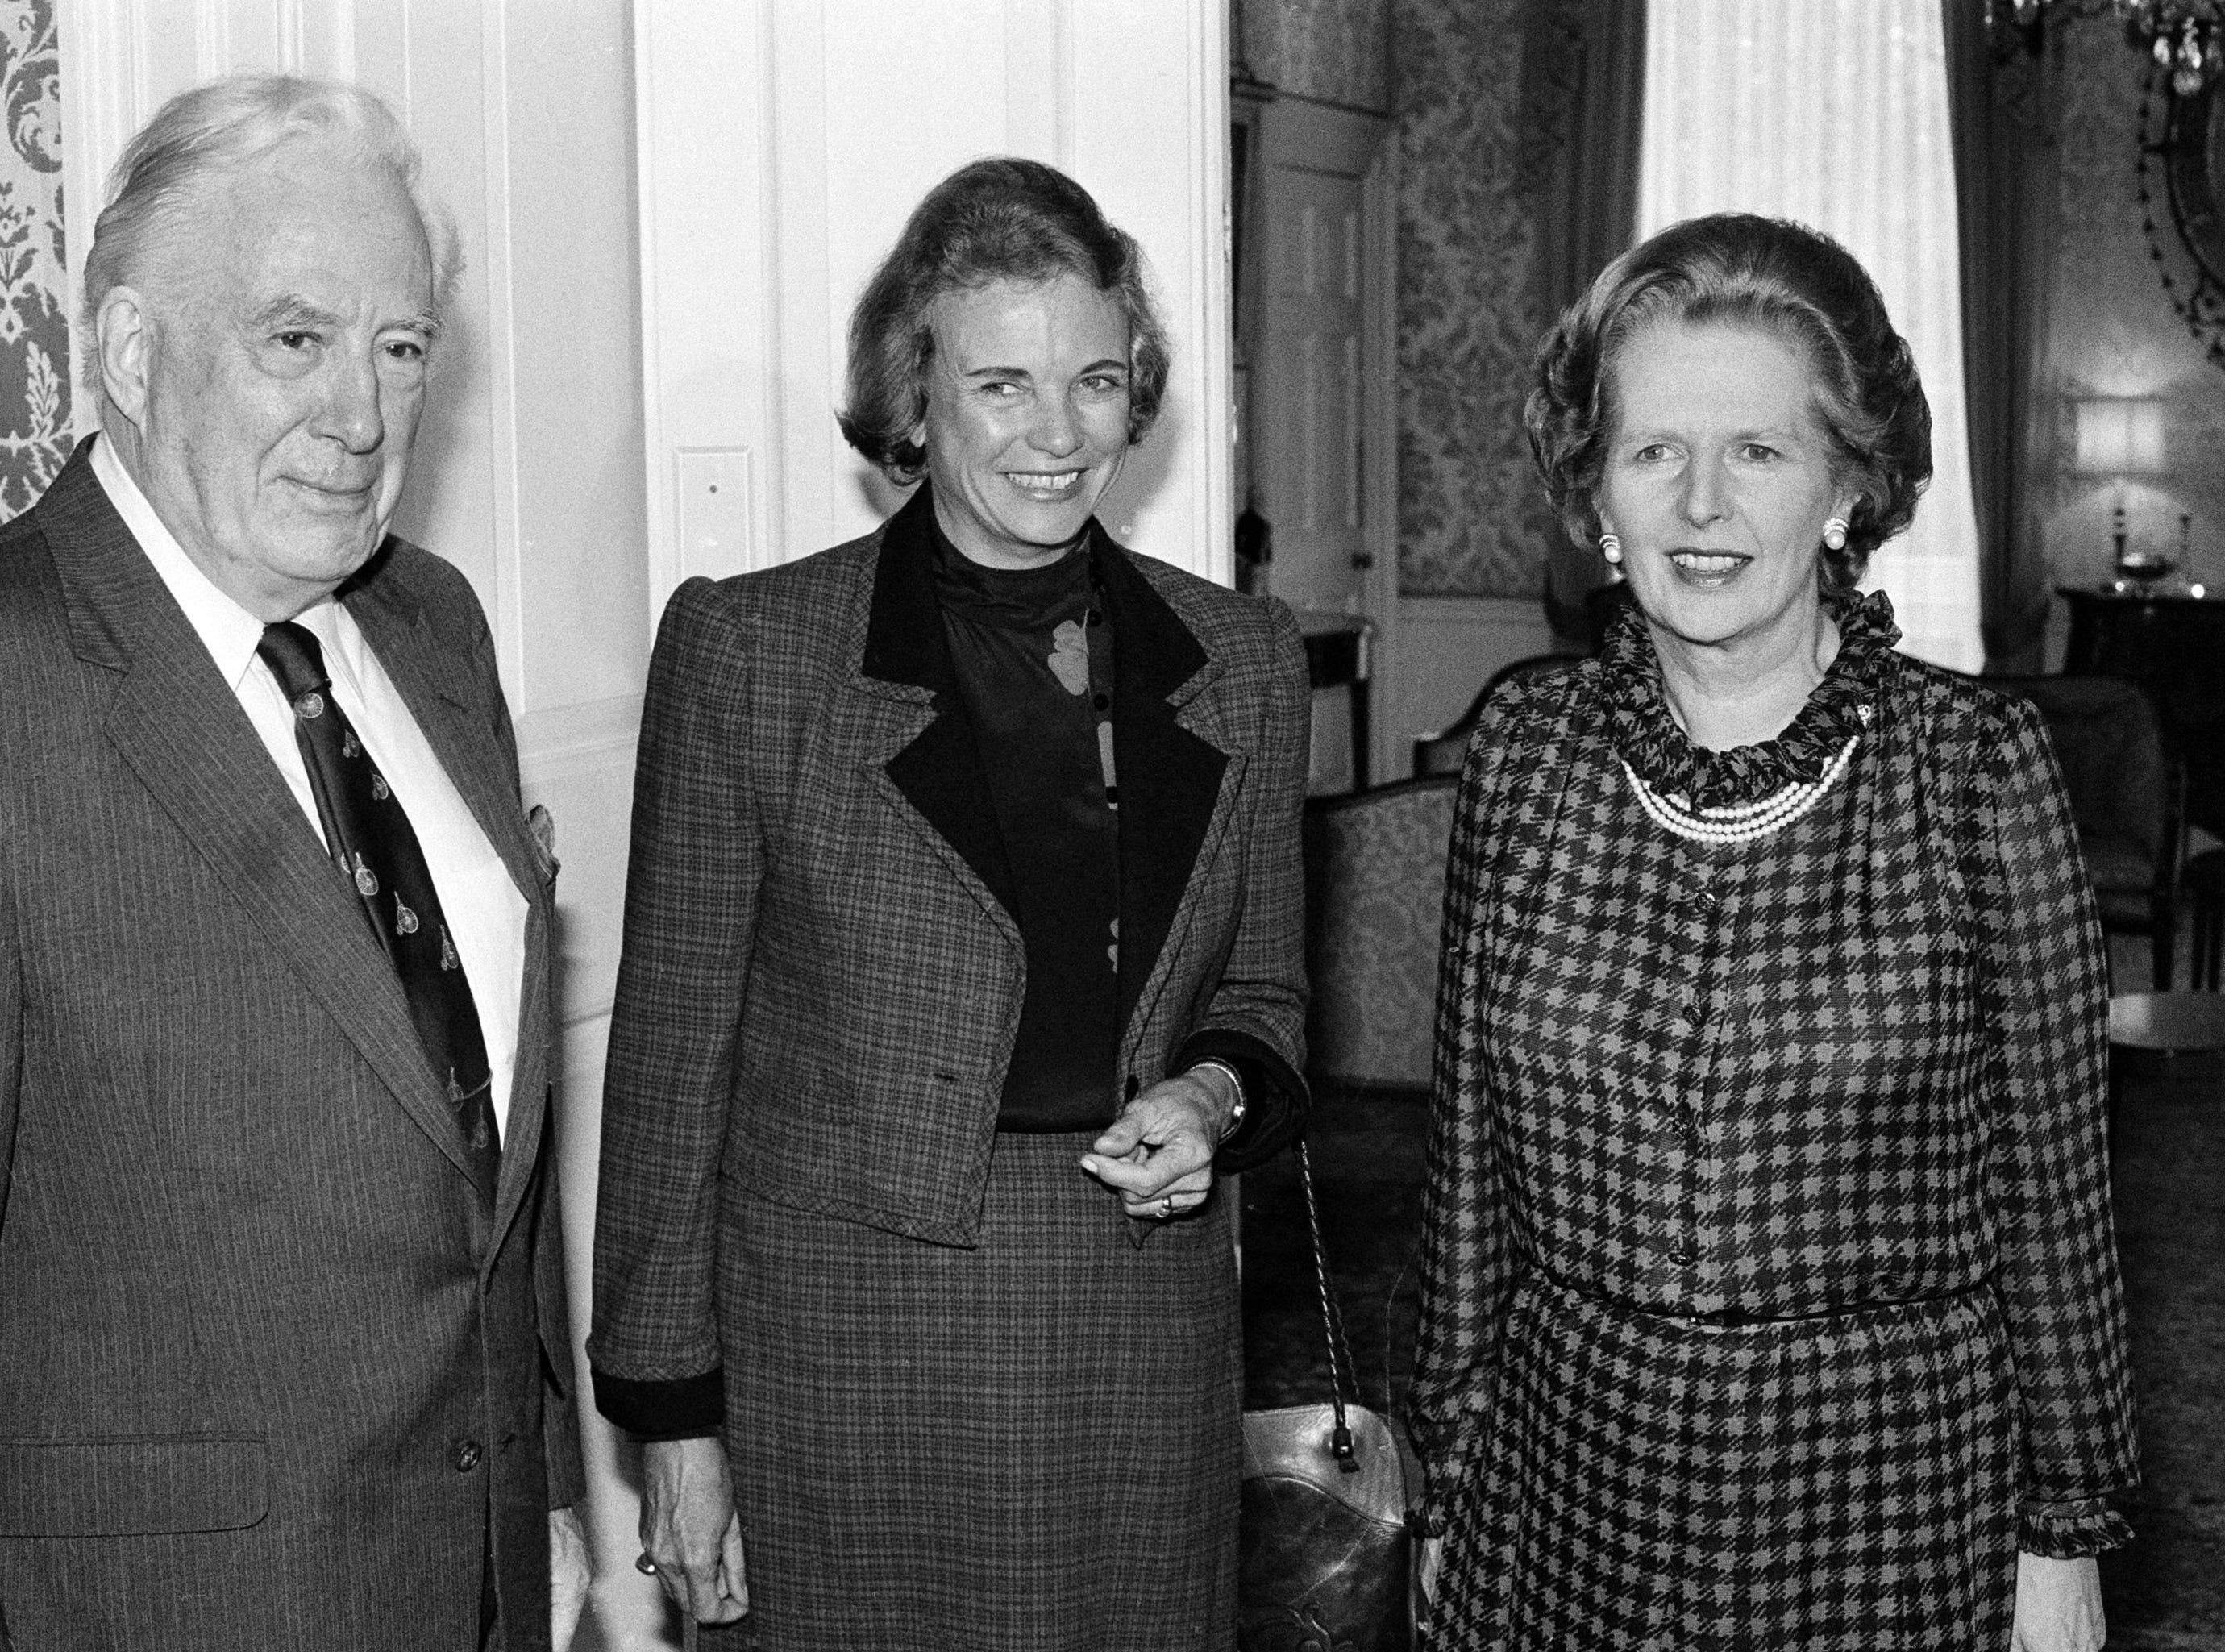 Britain's Prime Minister Margaret Thatcher poses with U.S. Chief Justice Warren Burger, and U.S. Supreme Court Judge Sandra Day O'Connor, prior to talks at 10 Downing Street in London, July 25, 1984.